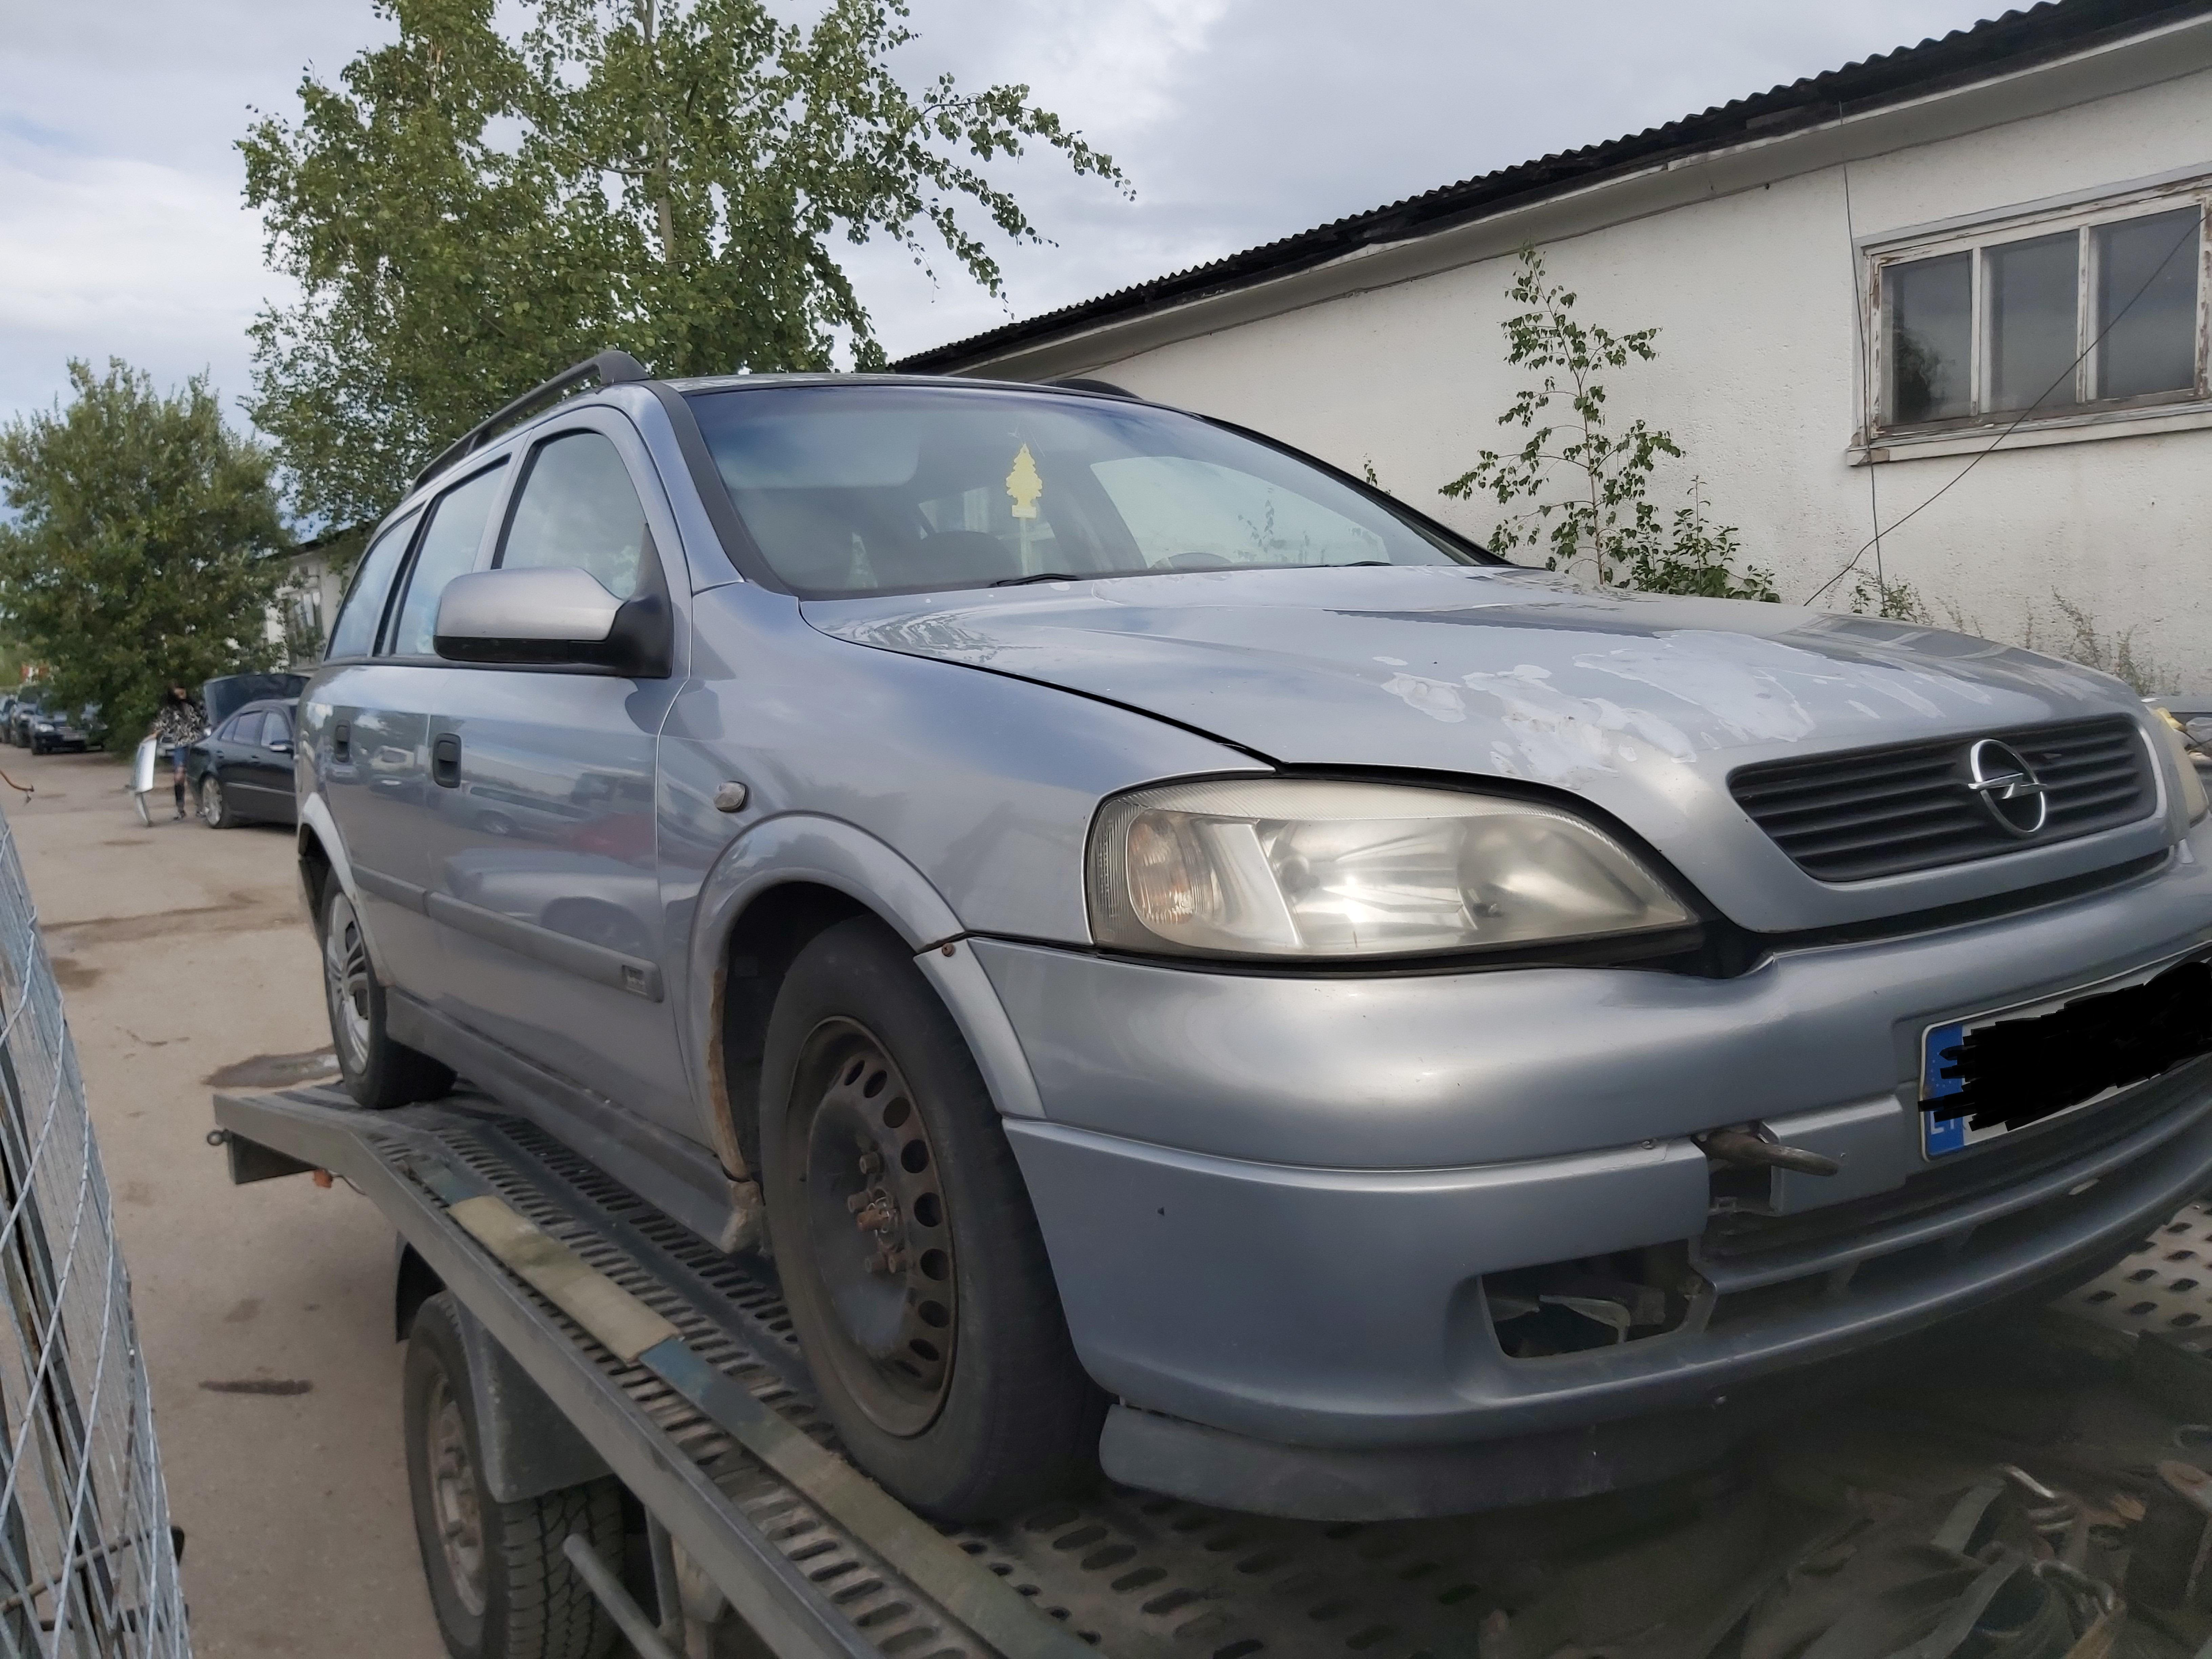 Foto-1 Opel Astra Astra, G 1998.09 - 2004.12 2000 Dyzelis 2.0